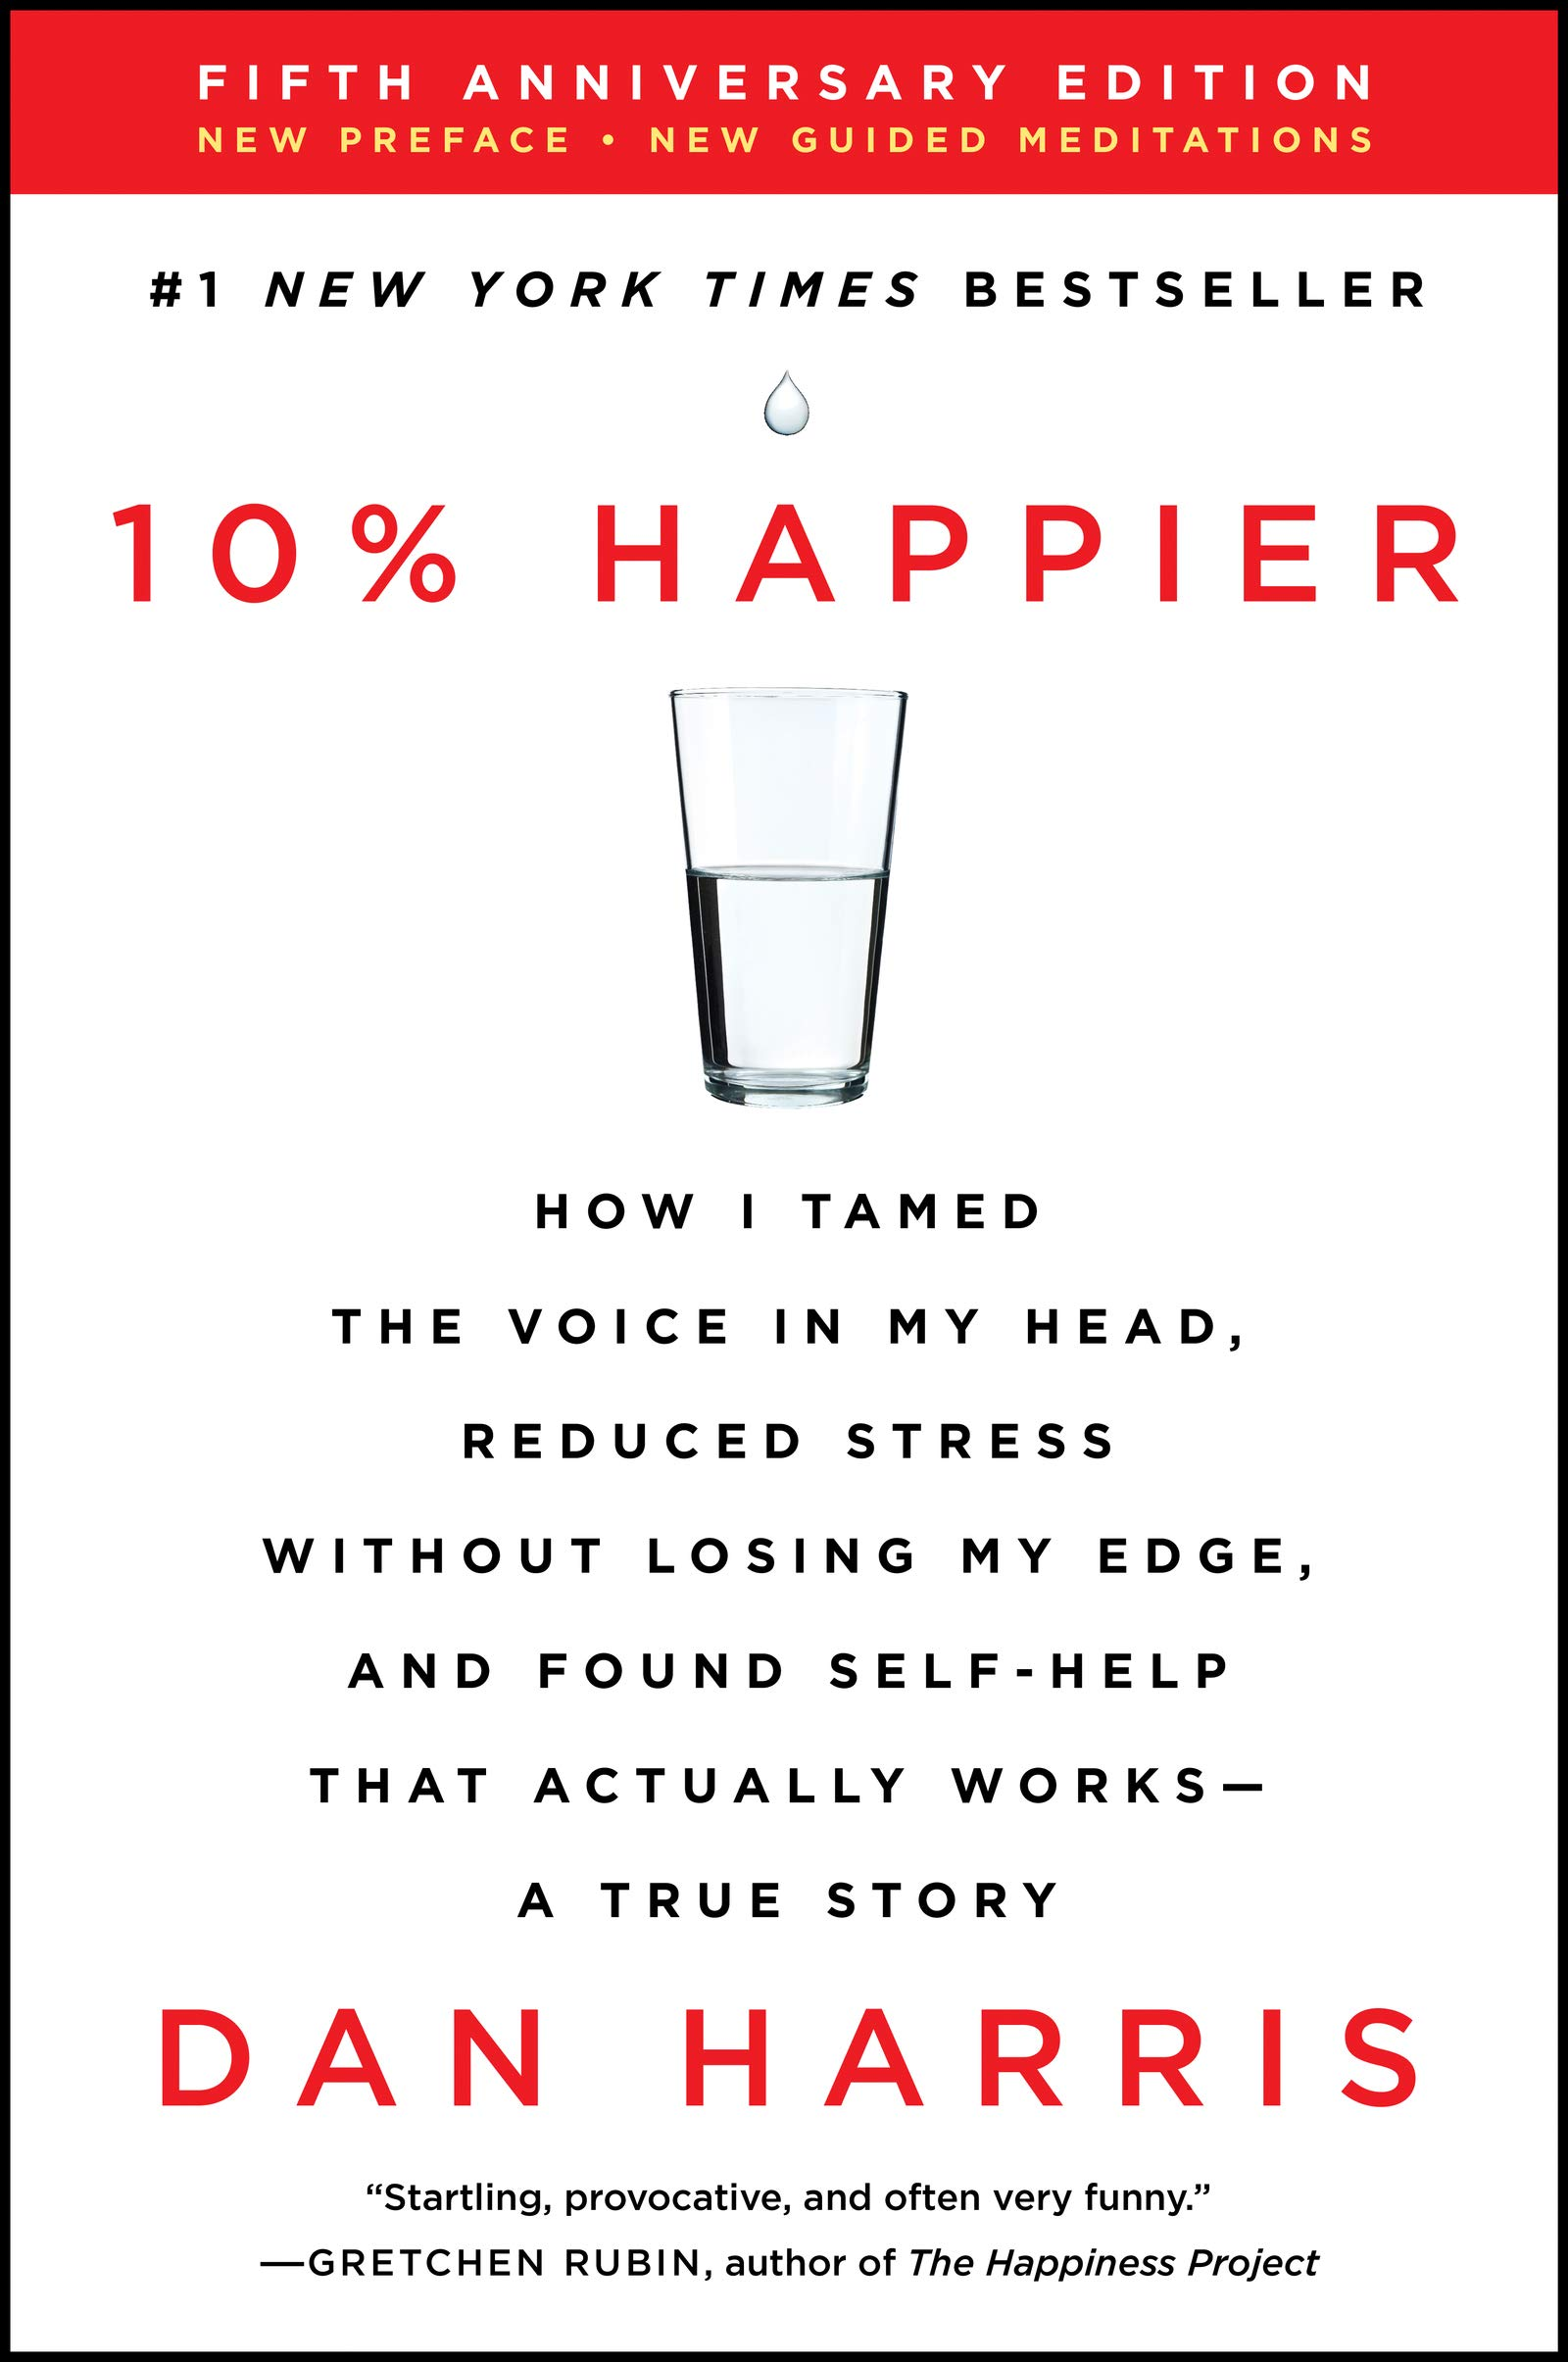 An approachable insight on the power of meditation and mindfulness written by a skeptic. Dan Harris offers a compelling and fun to read story that just might help you become 10% happier (with compounding interest). Every leader should read this and consider how a short meditation practice could up his or her game.